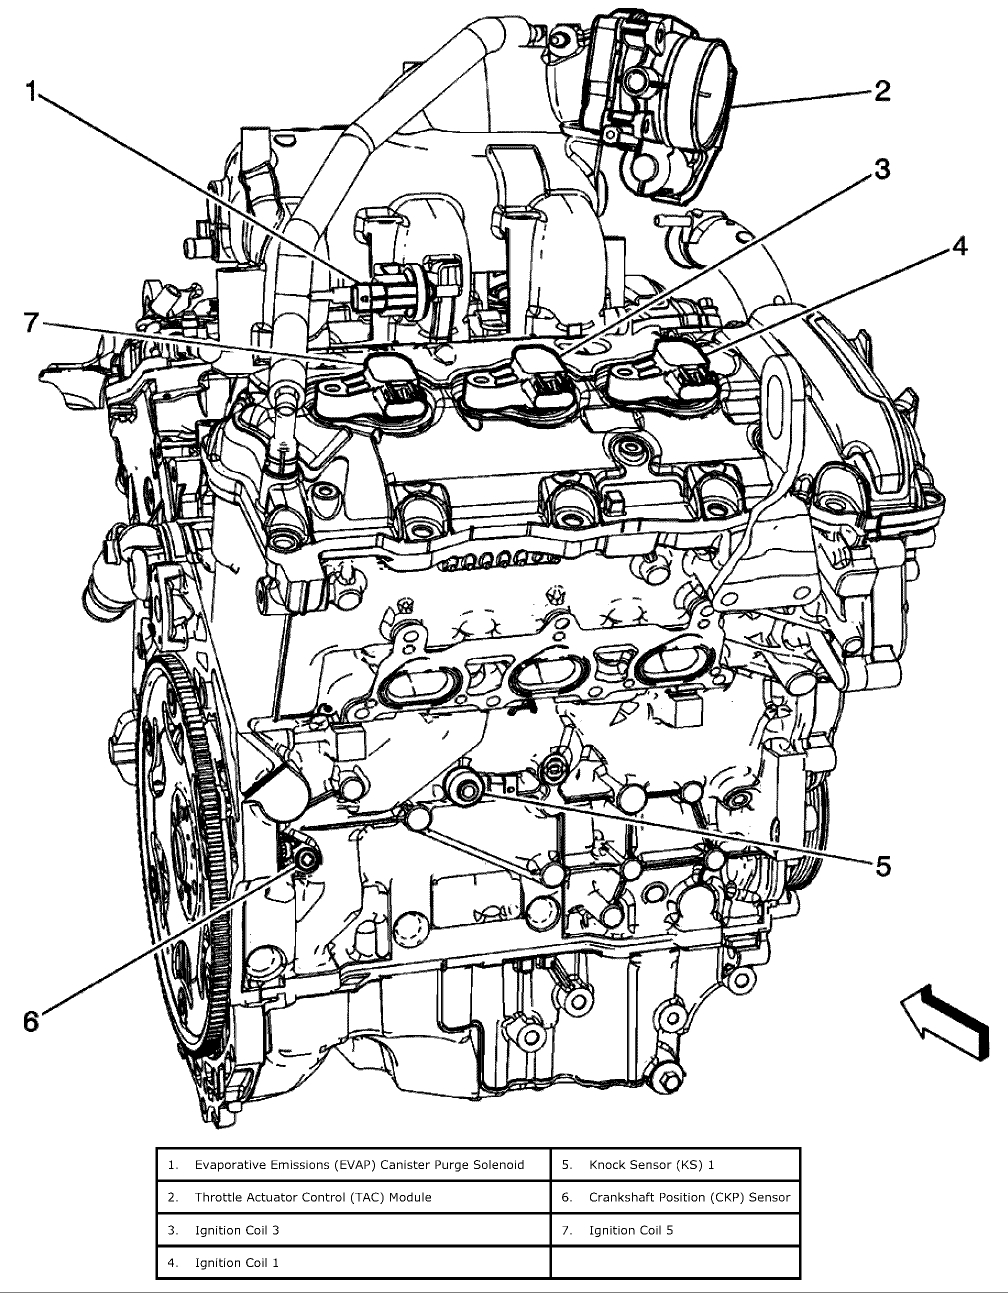 Circuit Electric For Guide: 2007 suzuki xl7 engine diagram